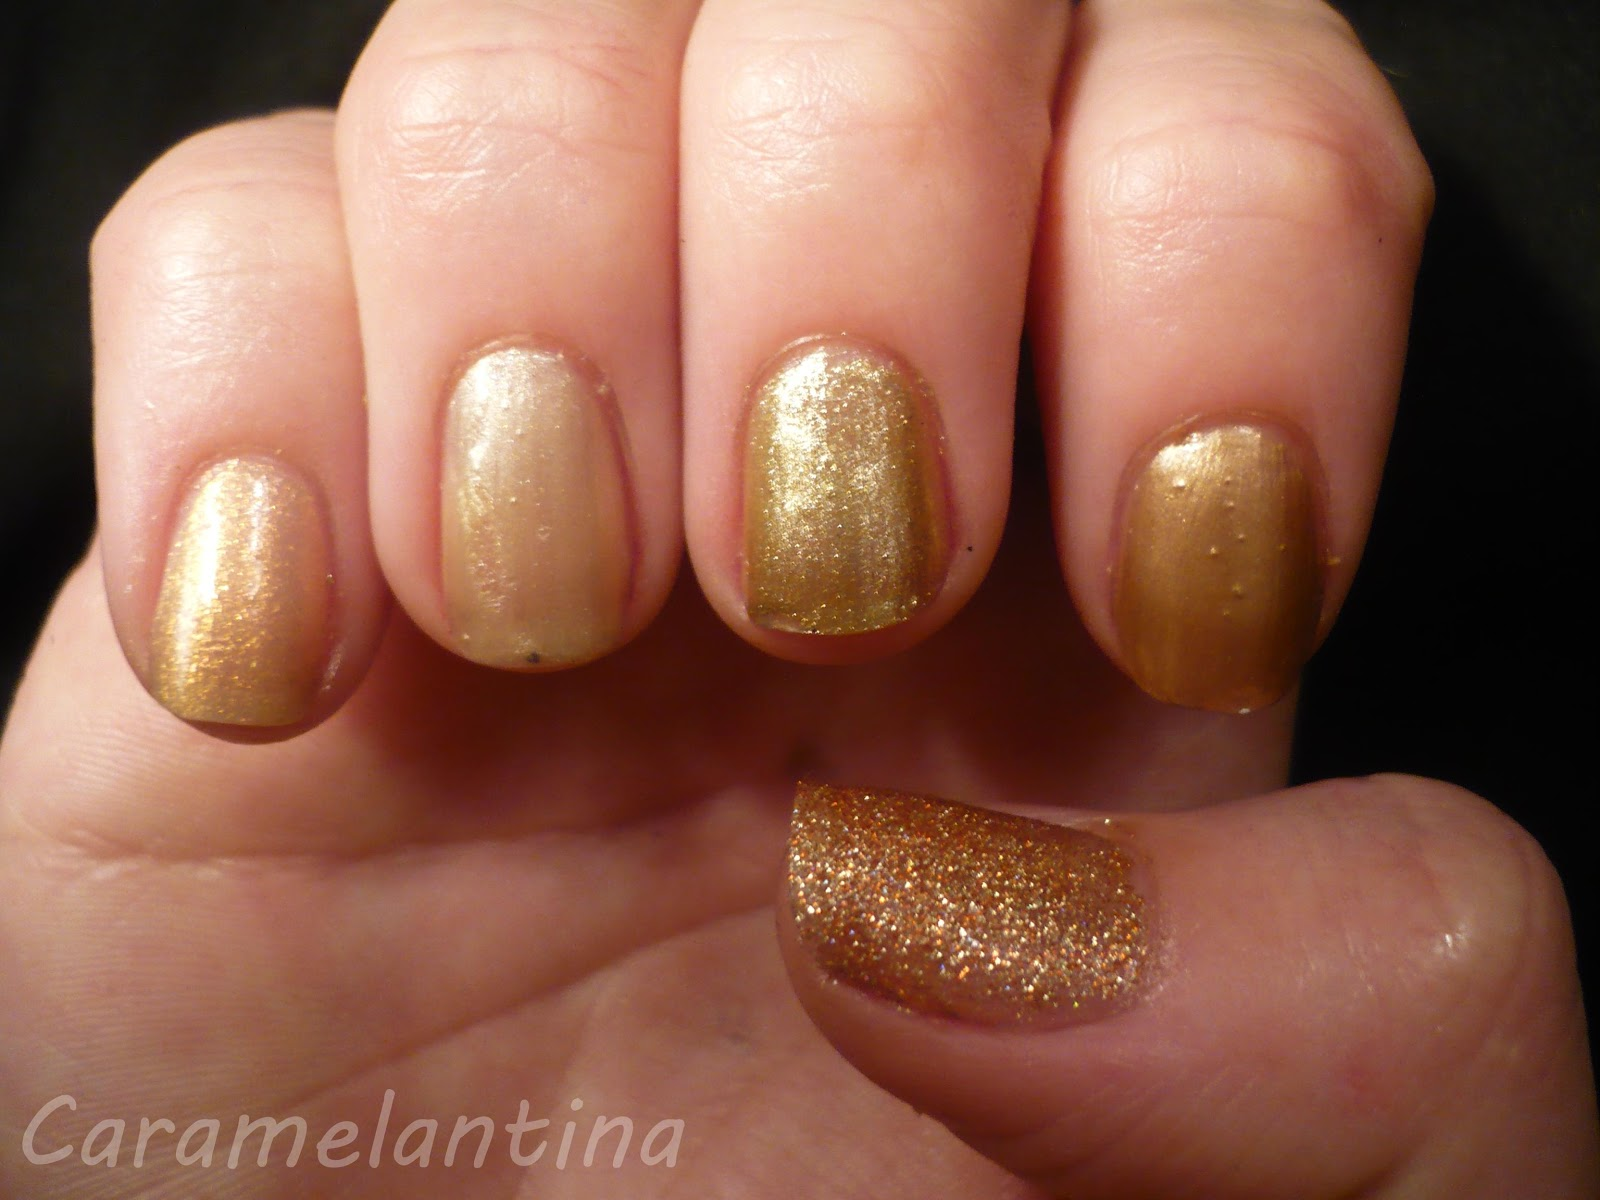 Revlon Gold Coast, Chaivil, Impala Ouro Nobre, Regina Day, China Glaze I Heard That